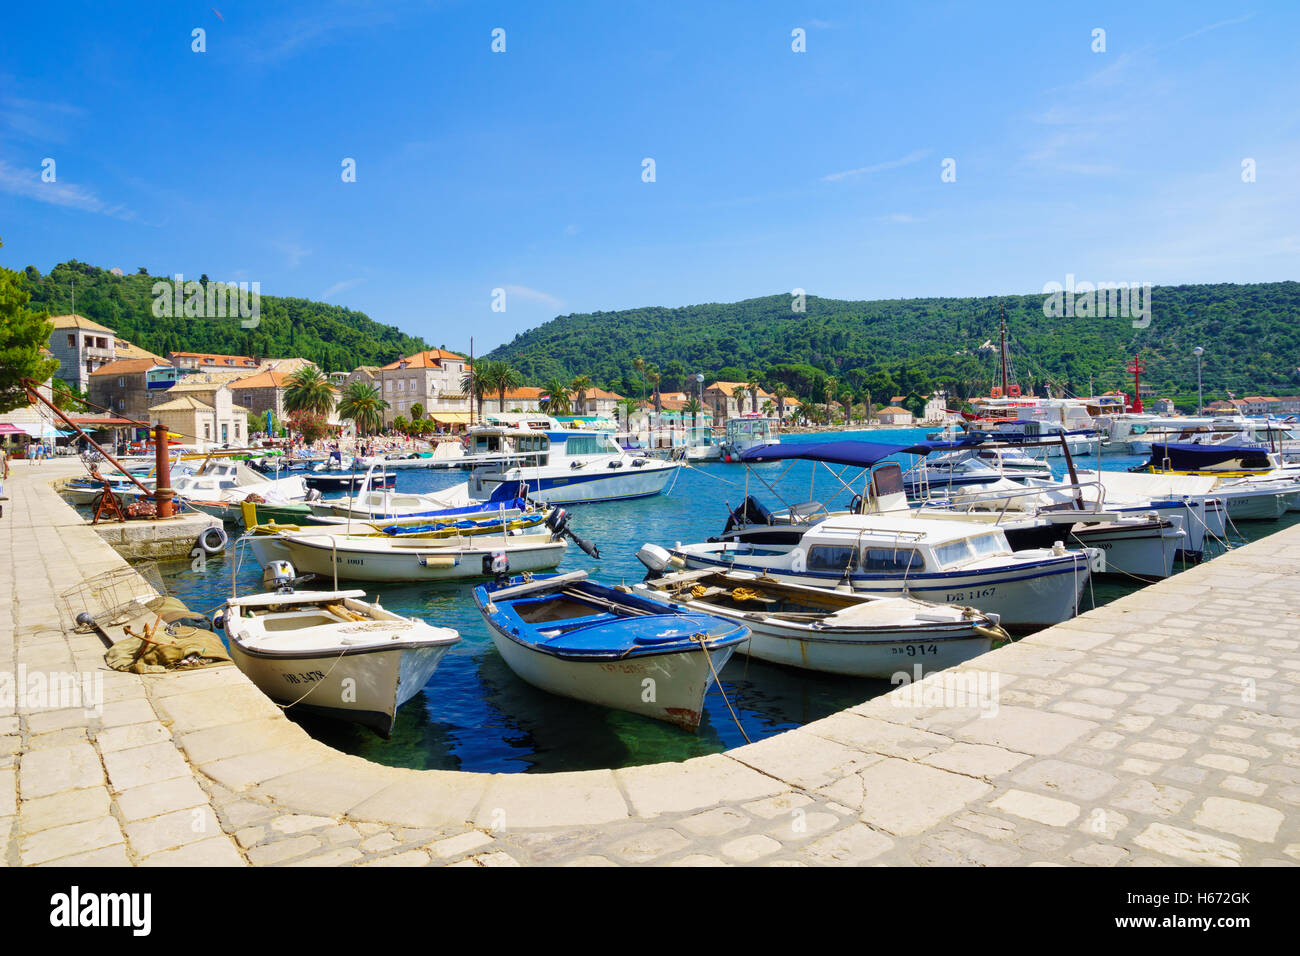 LOPUD, CROATIA - JUNE 27, 2015: Scene of the fishing port and the beach, with boats, locals and tourists, in the - Stock Image